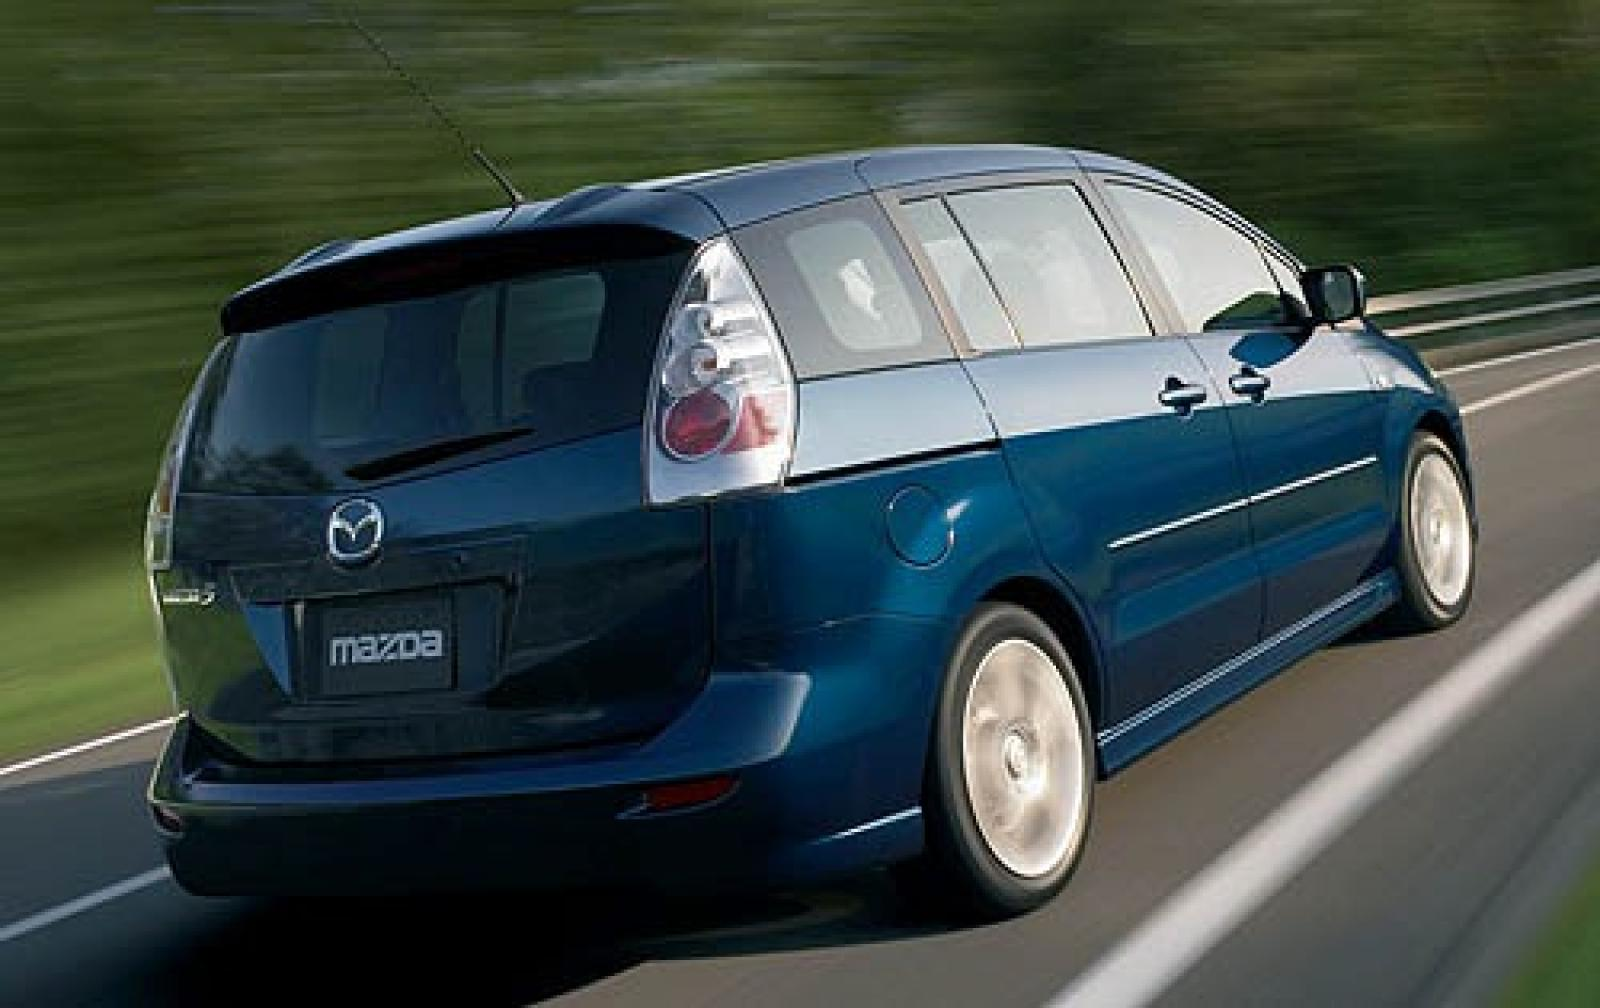 2006 mazda mazda5 information and photos zombiedrive. Black Bedroom Furniture Sets. Home Design Ideas